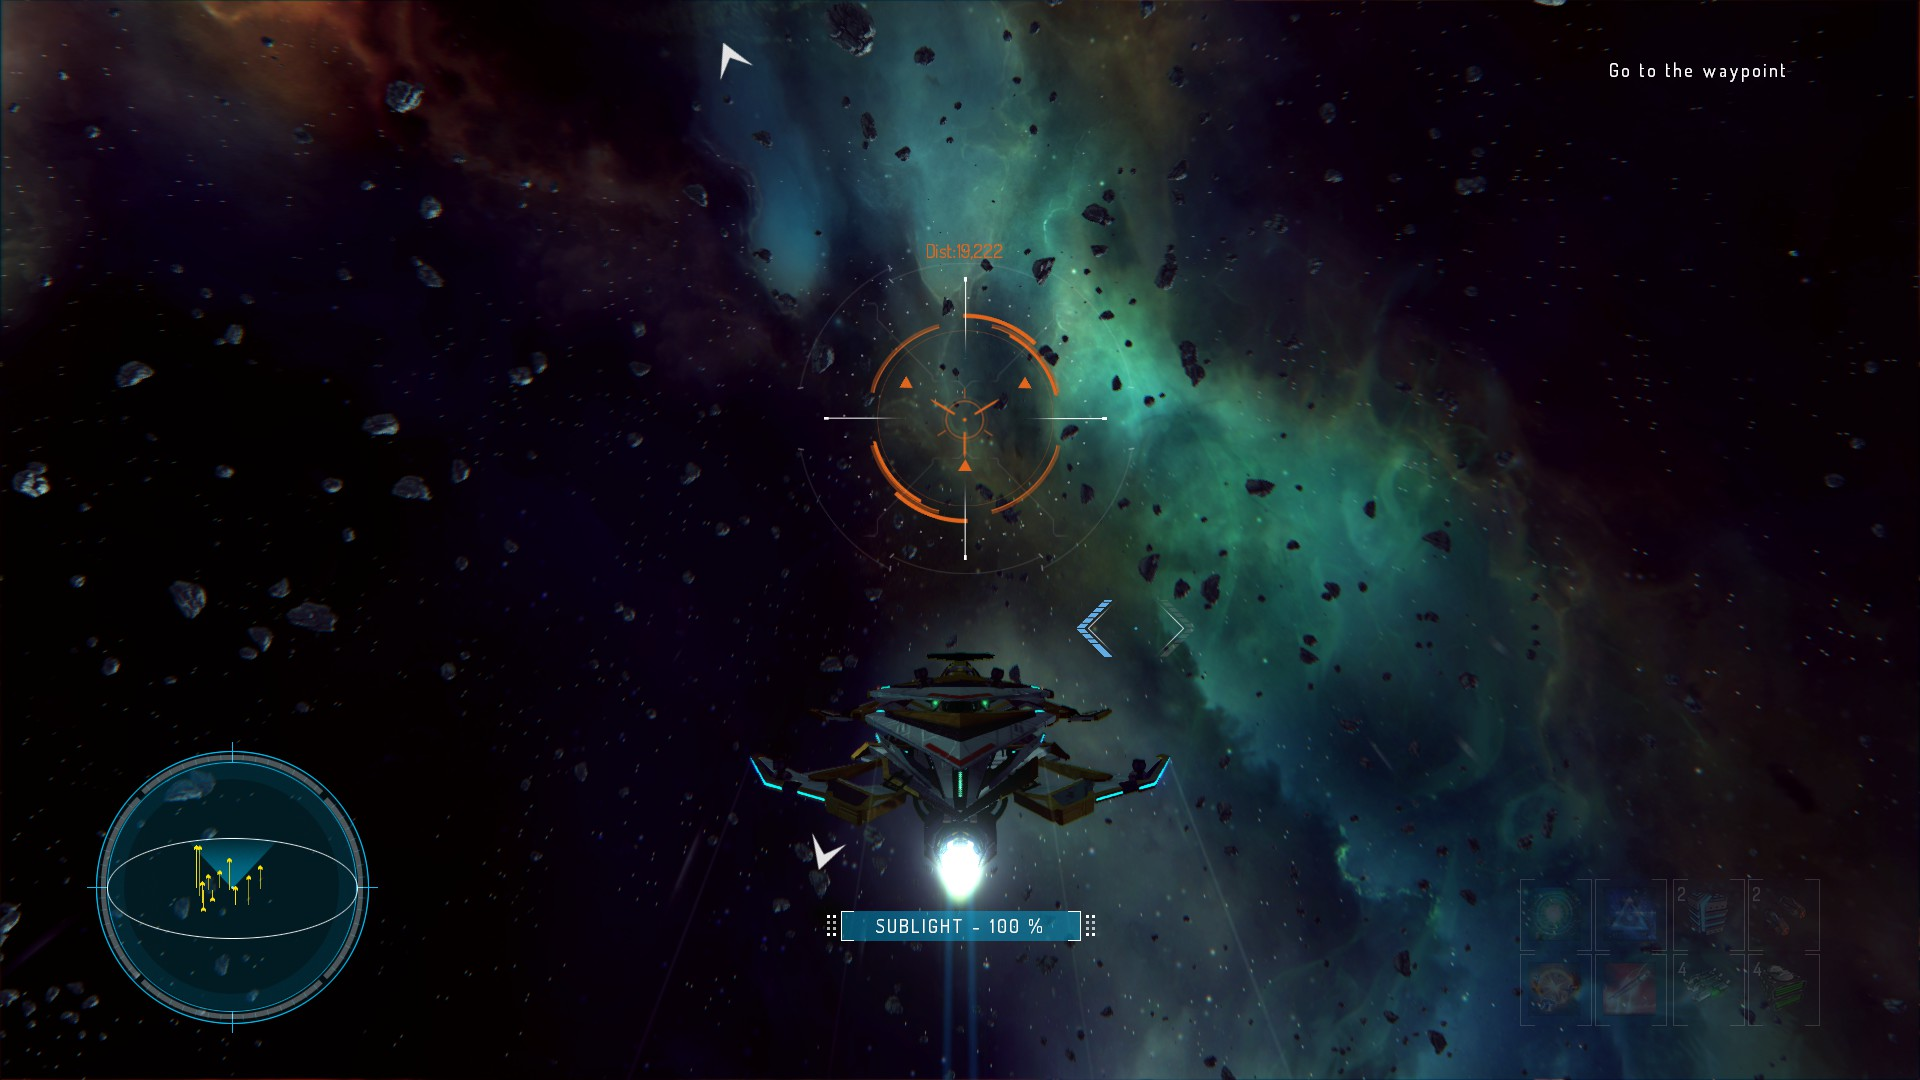 Steam community guide getting started in starpoint gemini warlords the hud automatically responds to the situation youre currently facing for example when combat begins youll notice more elements appear on the hud malvernweather Image collections